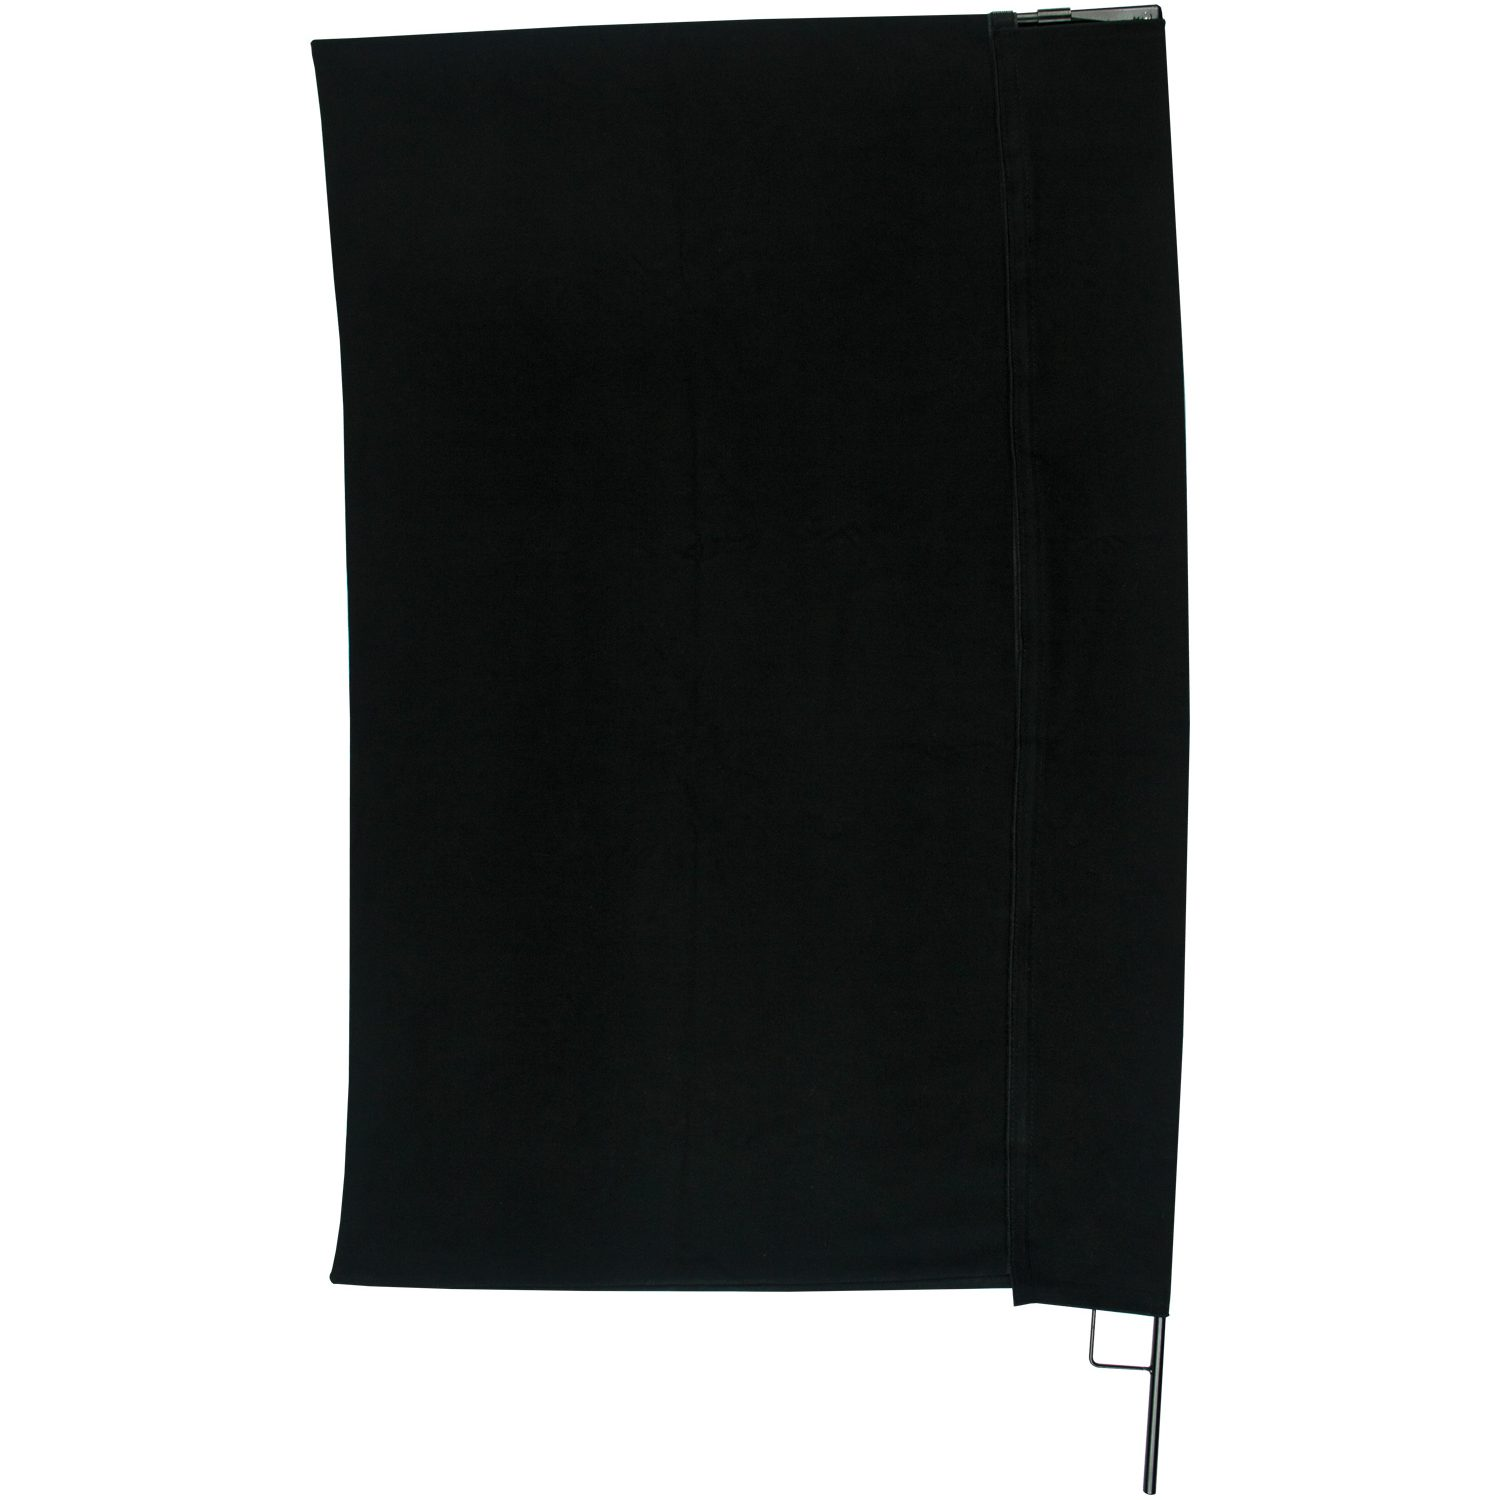 "Fast Flag 24"" x 36"" Black Block"